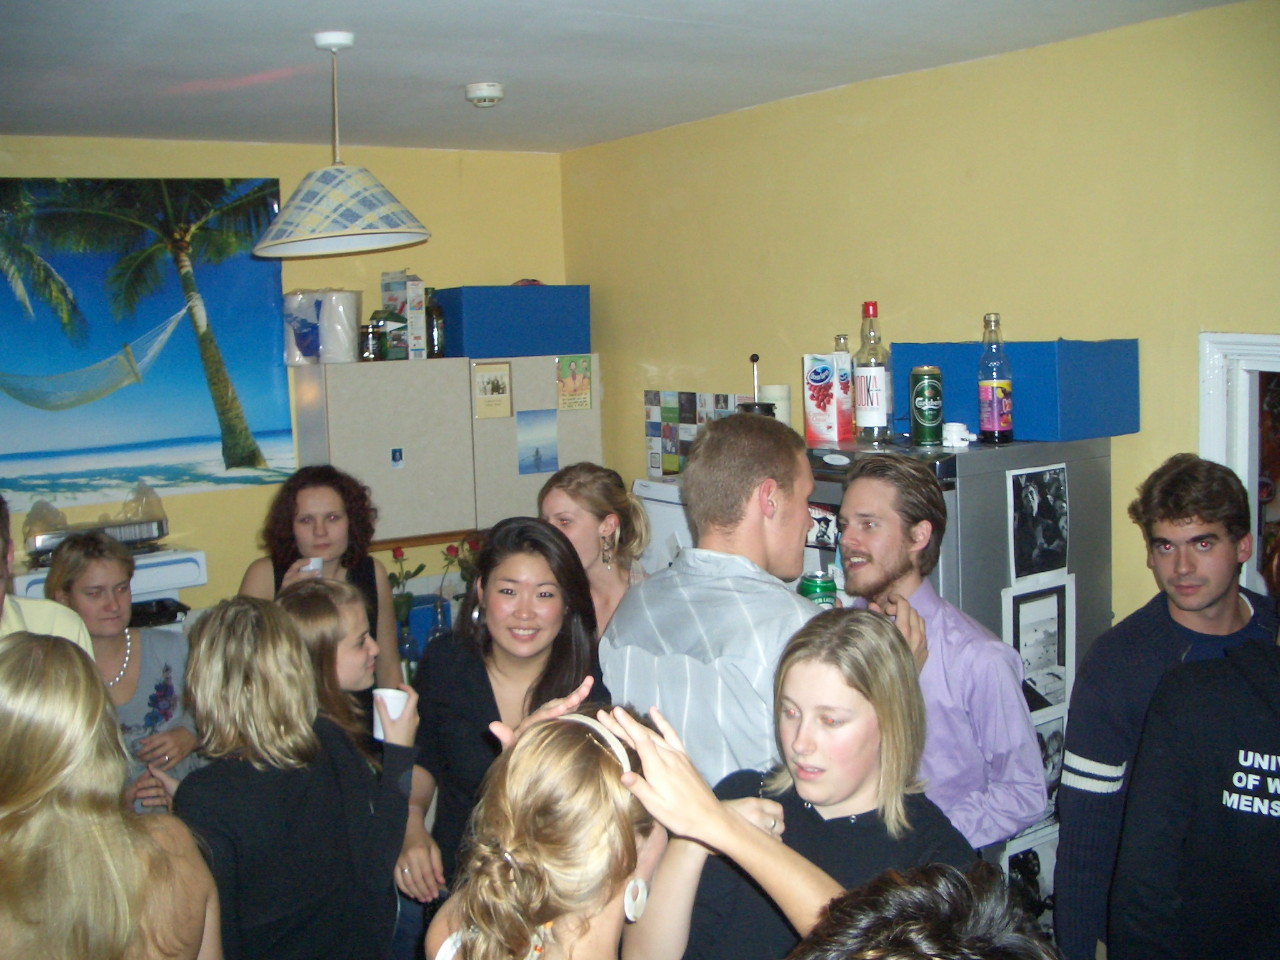 http://1.bp.blogspot.com/_3-h7k_OIJk0/Sw8w8DL_CLI/AAAAAAAAB9E/CW_A1xmHop4/s1600/house_party_october.jpg